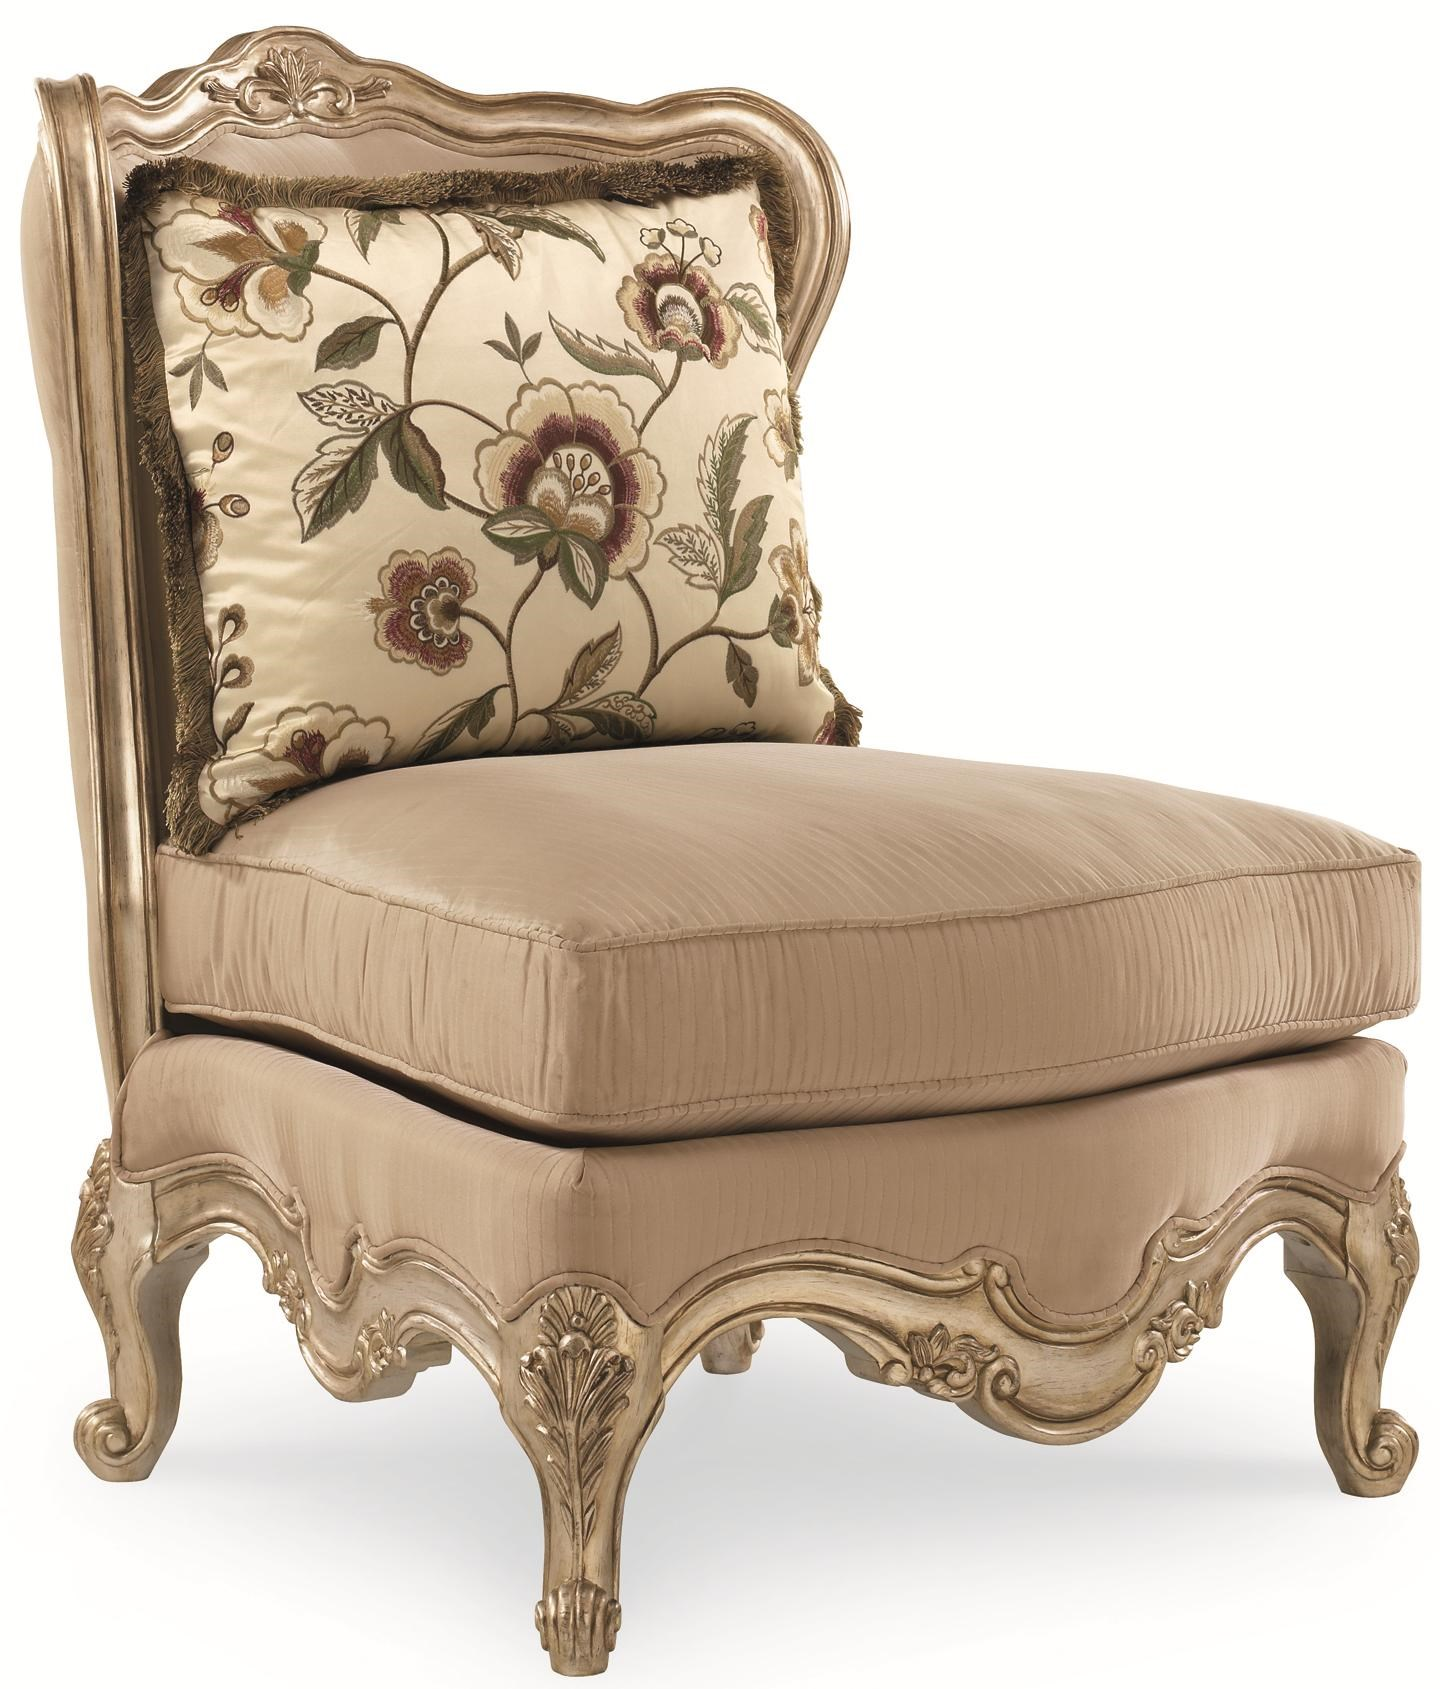 Exceptional Schnadig FlorenceFlorence Chair ...